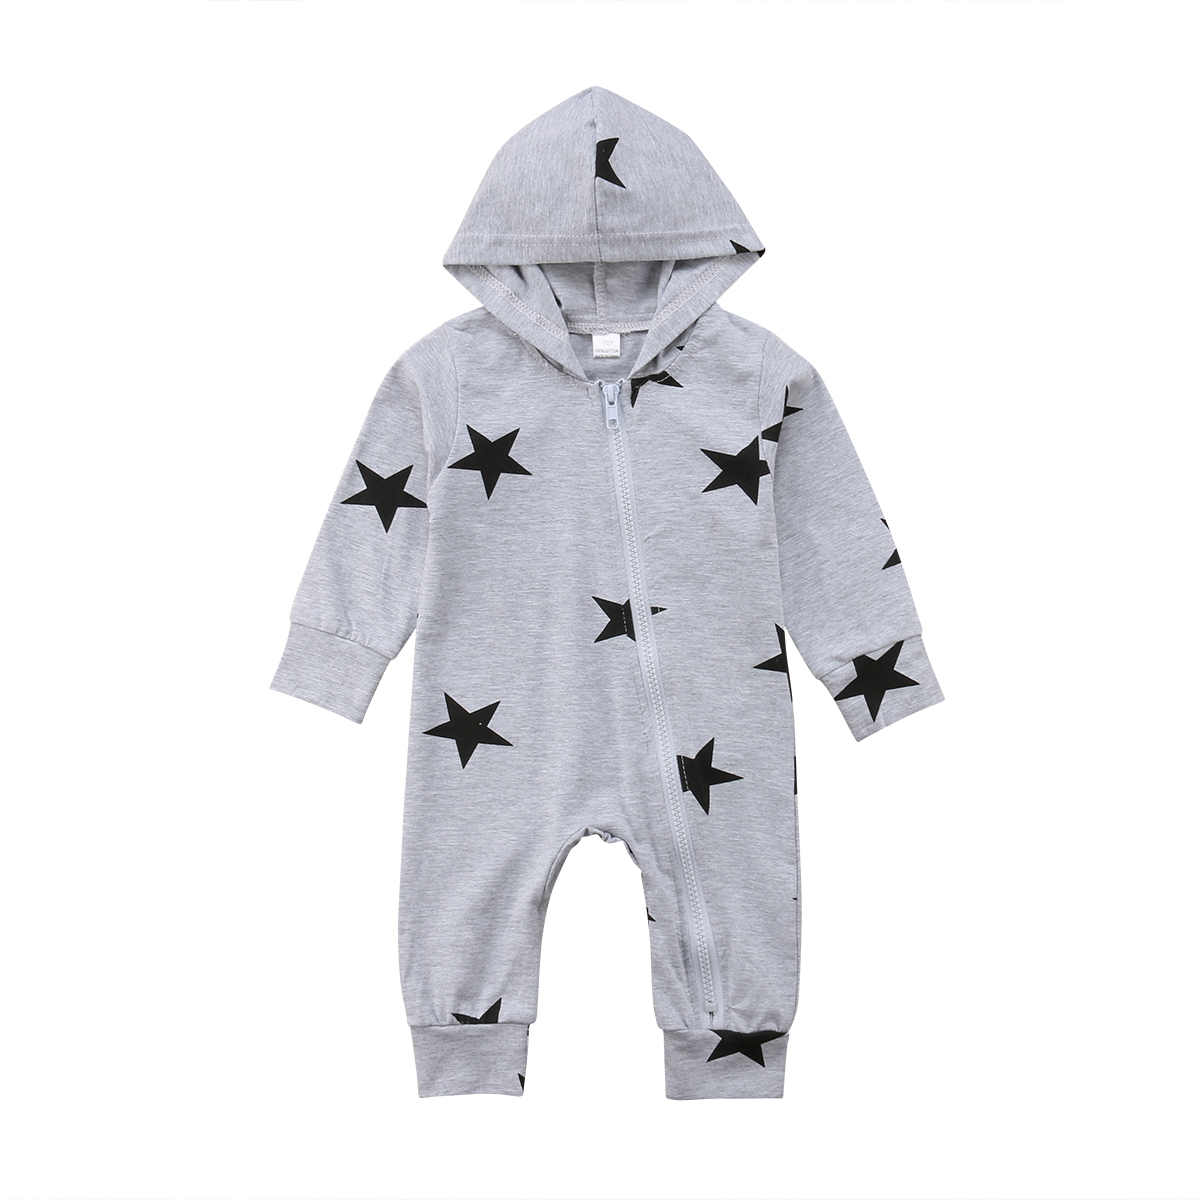 0-24M Newborn Toddler Baby Boy Girls Clothing Stars Print Hooded Romper Cute Jumpsuit Cotton Pajamas Clothes Brand Outfits